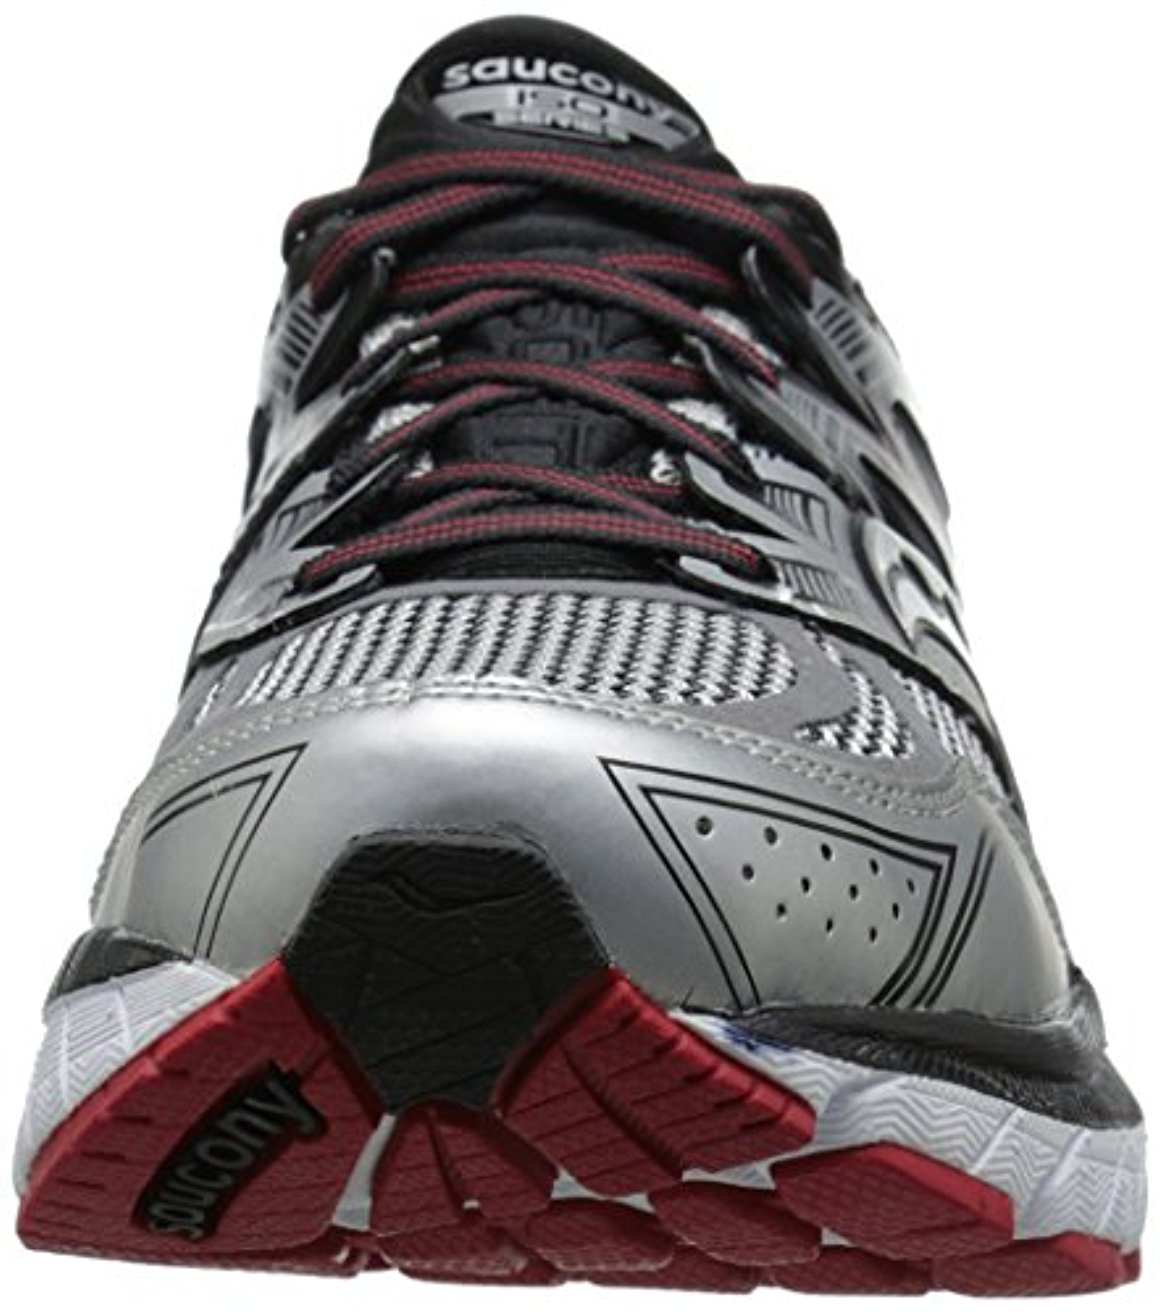 Saucony Men's Redeemer ISO Running Shoe, Silver/Black, 15 XW US